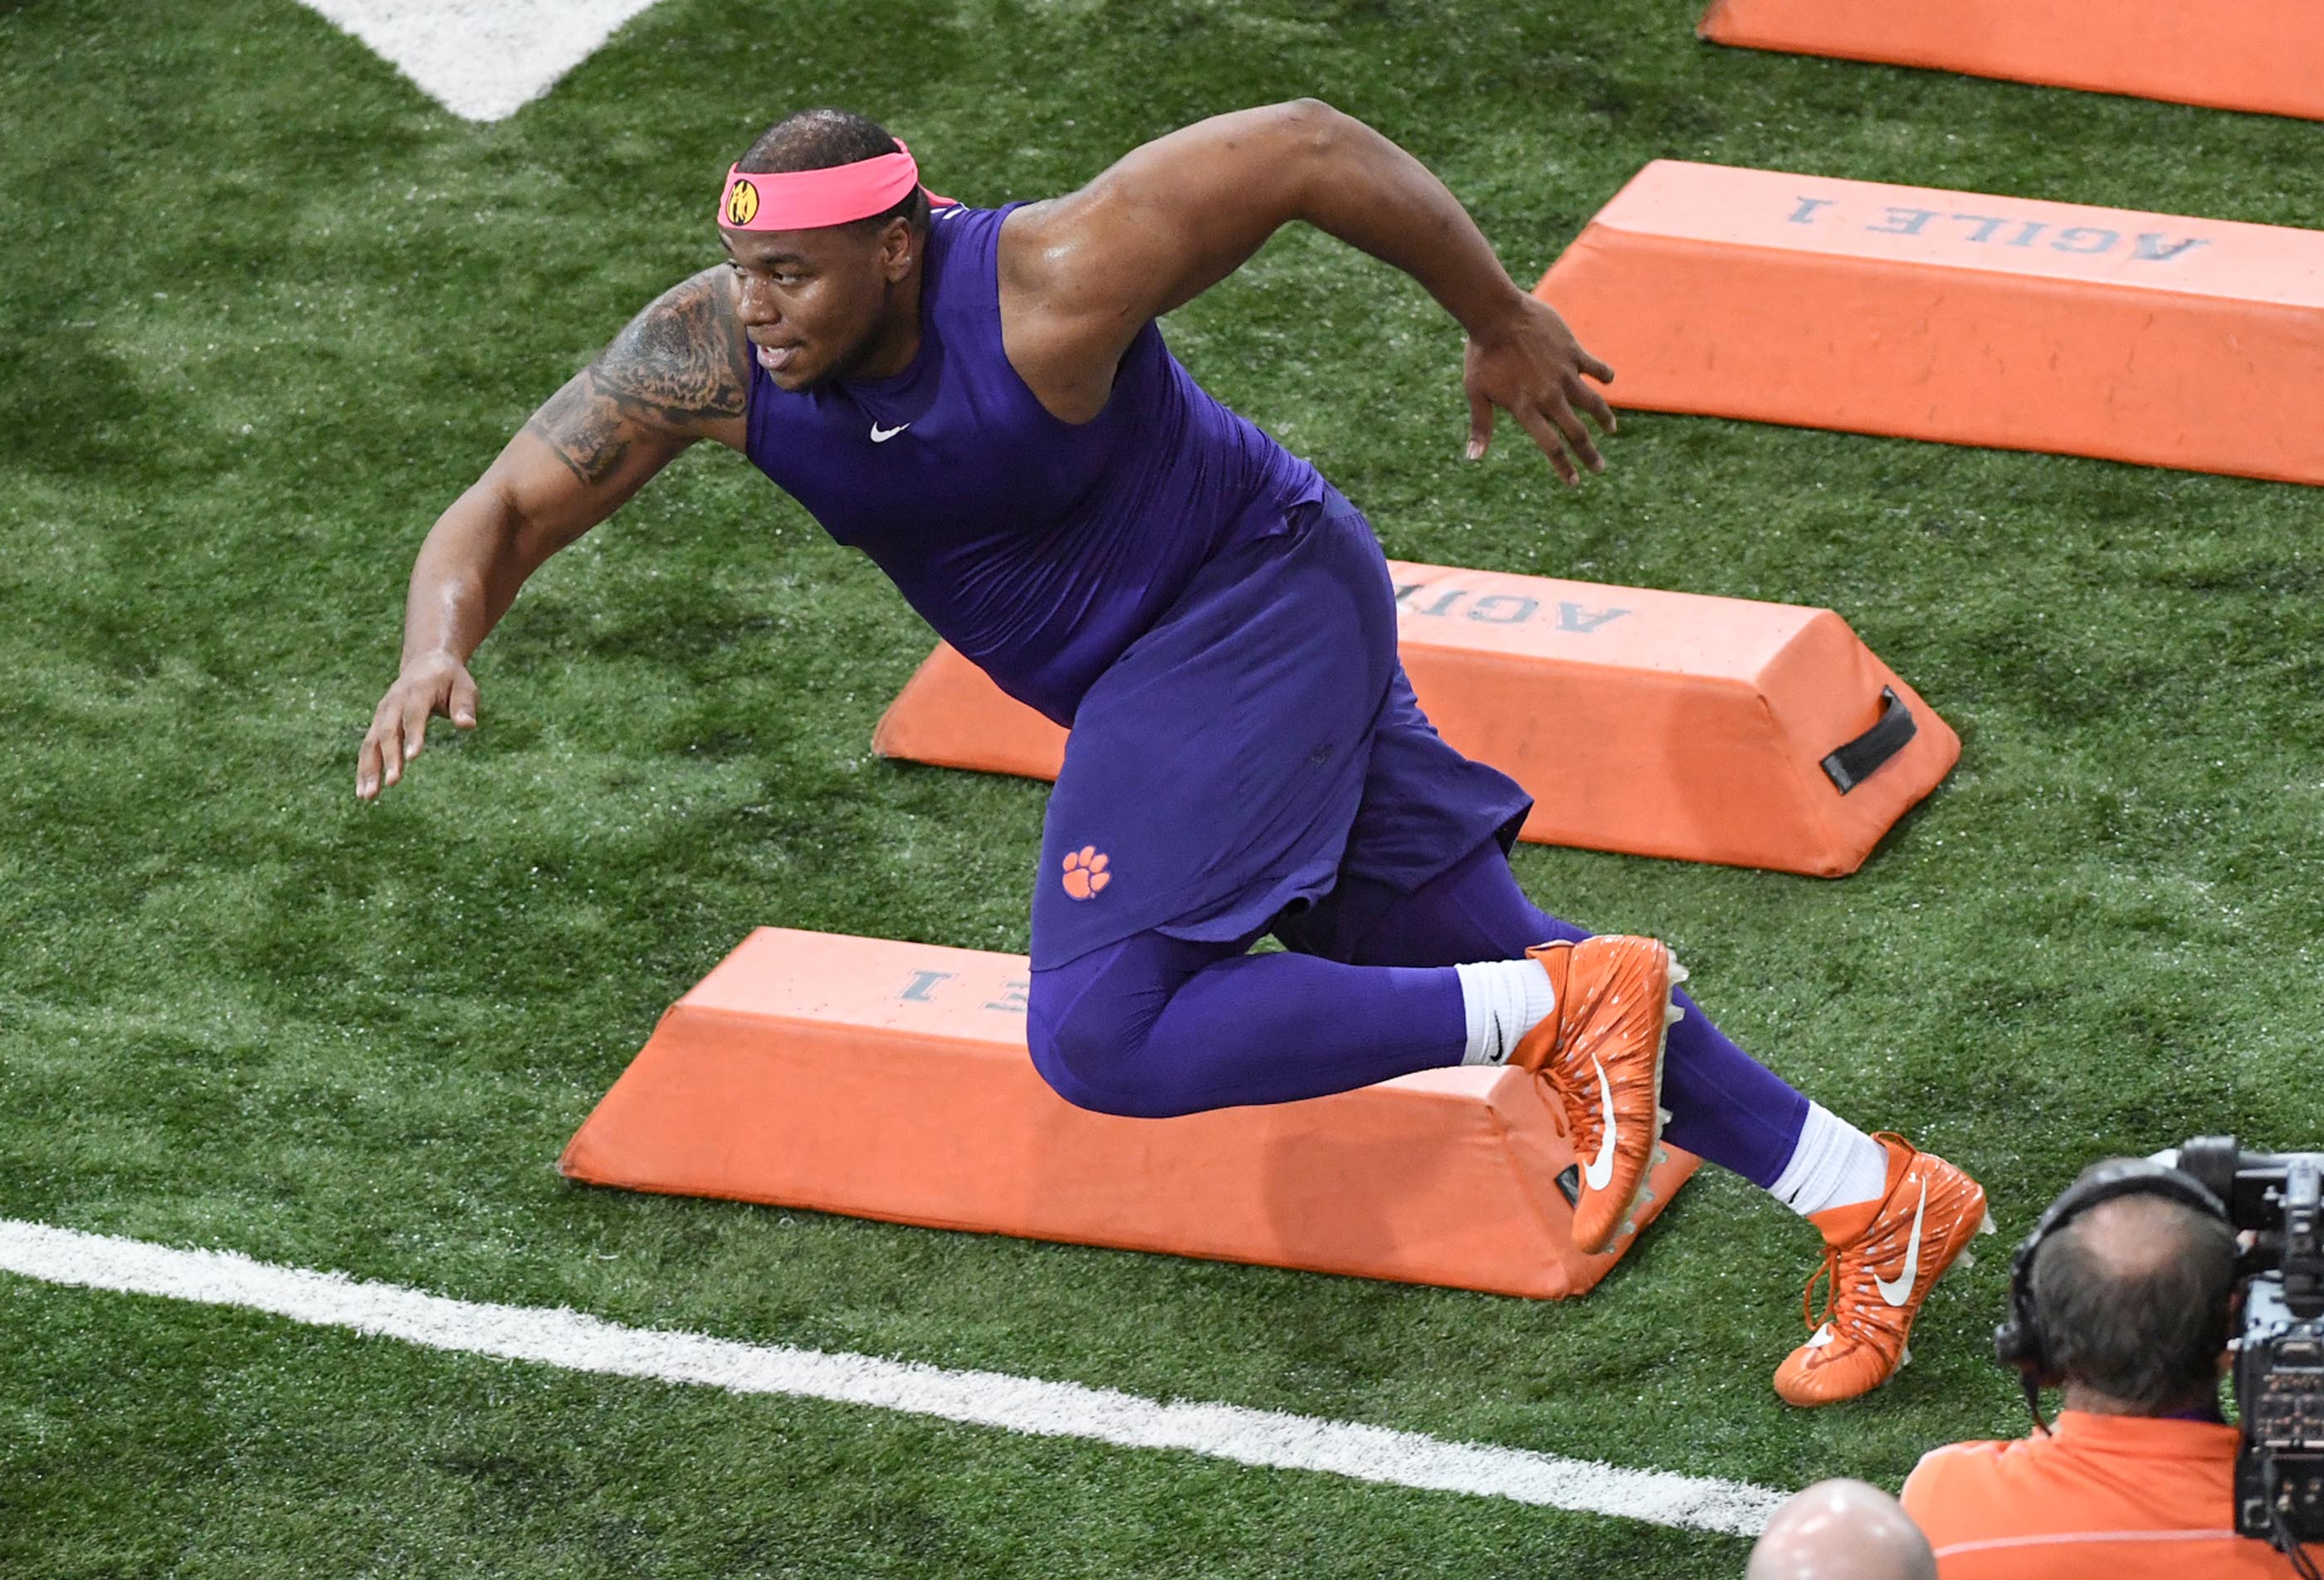 Ex-Clemson standout Dexter Lawrence on PED questions ahead of NFL draft: 'You can't hide from it'